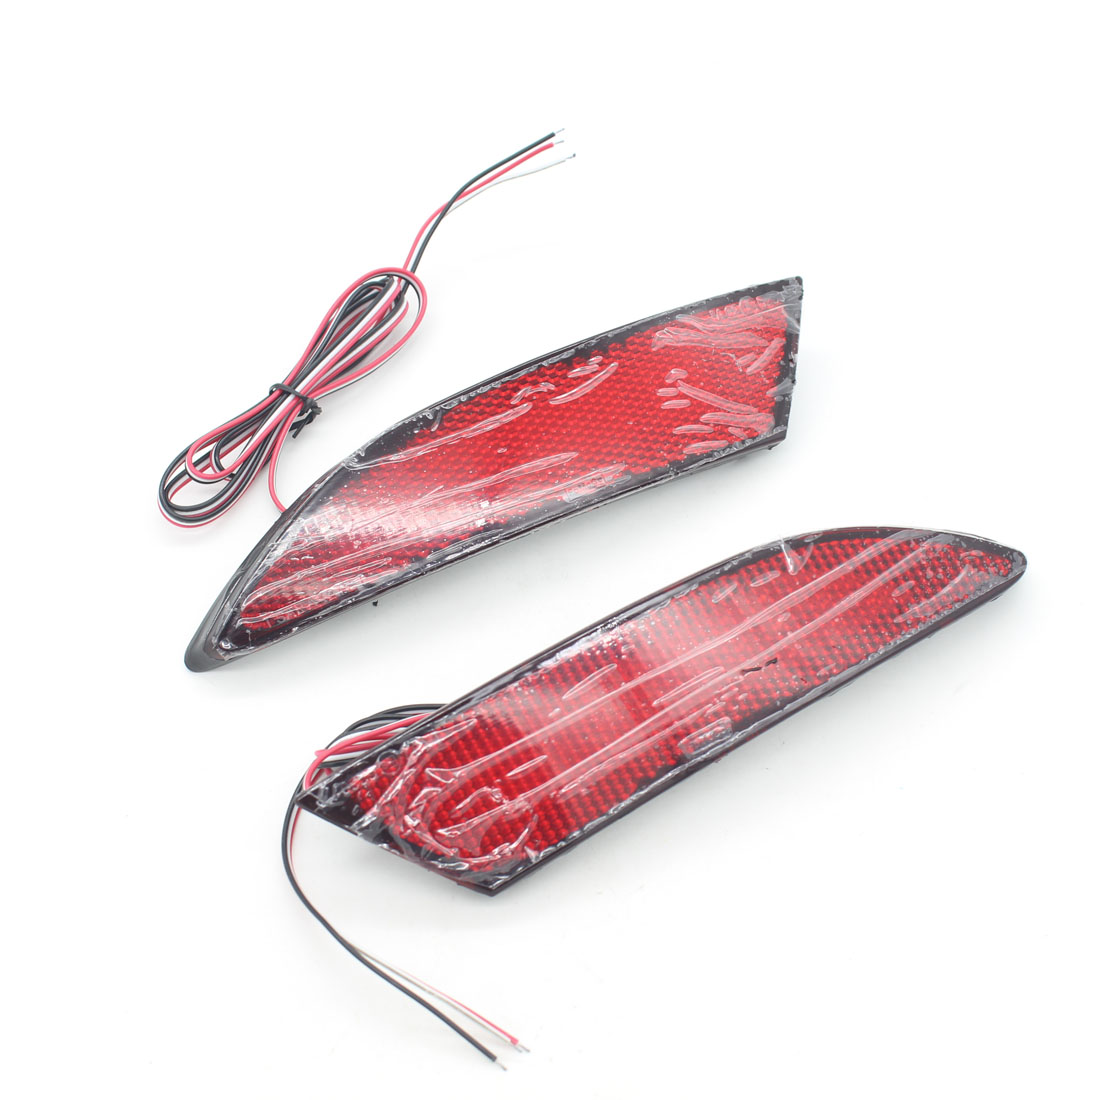 Dongzhen Fit For Focus 2012 Car Accessories LED Red Rear Bumper Reflectors Light Brake Parking Warning Night Running Tail Lights 2pcs red rear bumper reflectors light brake parking warning night runing tail lamps led for honda odyssey 2007